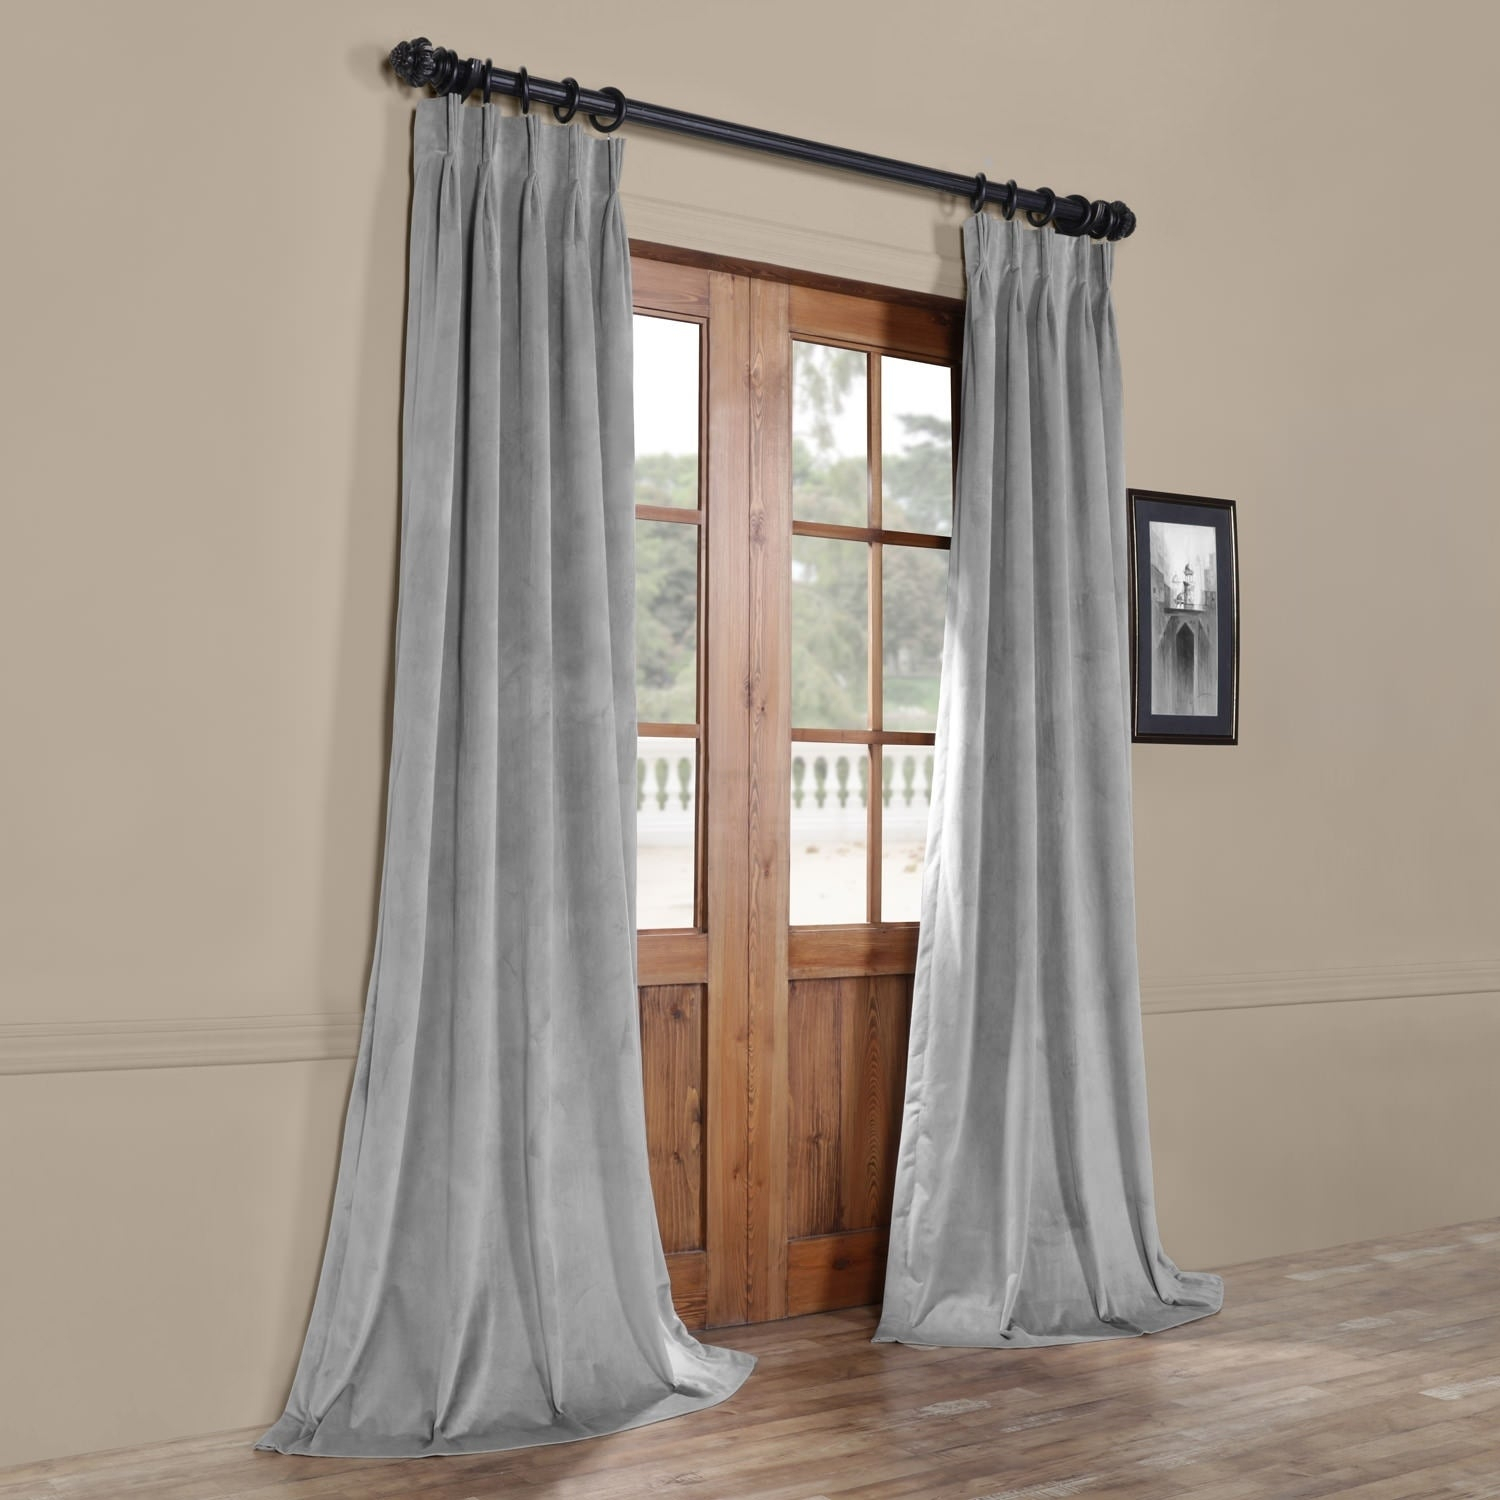 Exclusive Fabrics Signature Pinch Pleated Blackout Solid Velvet Curtain Panel With Signature Pinch Pleated Blackout Solid Velvet Curtain Panels (View 18 of 36)